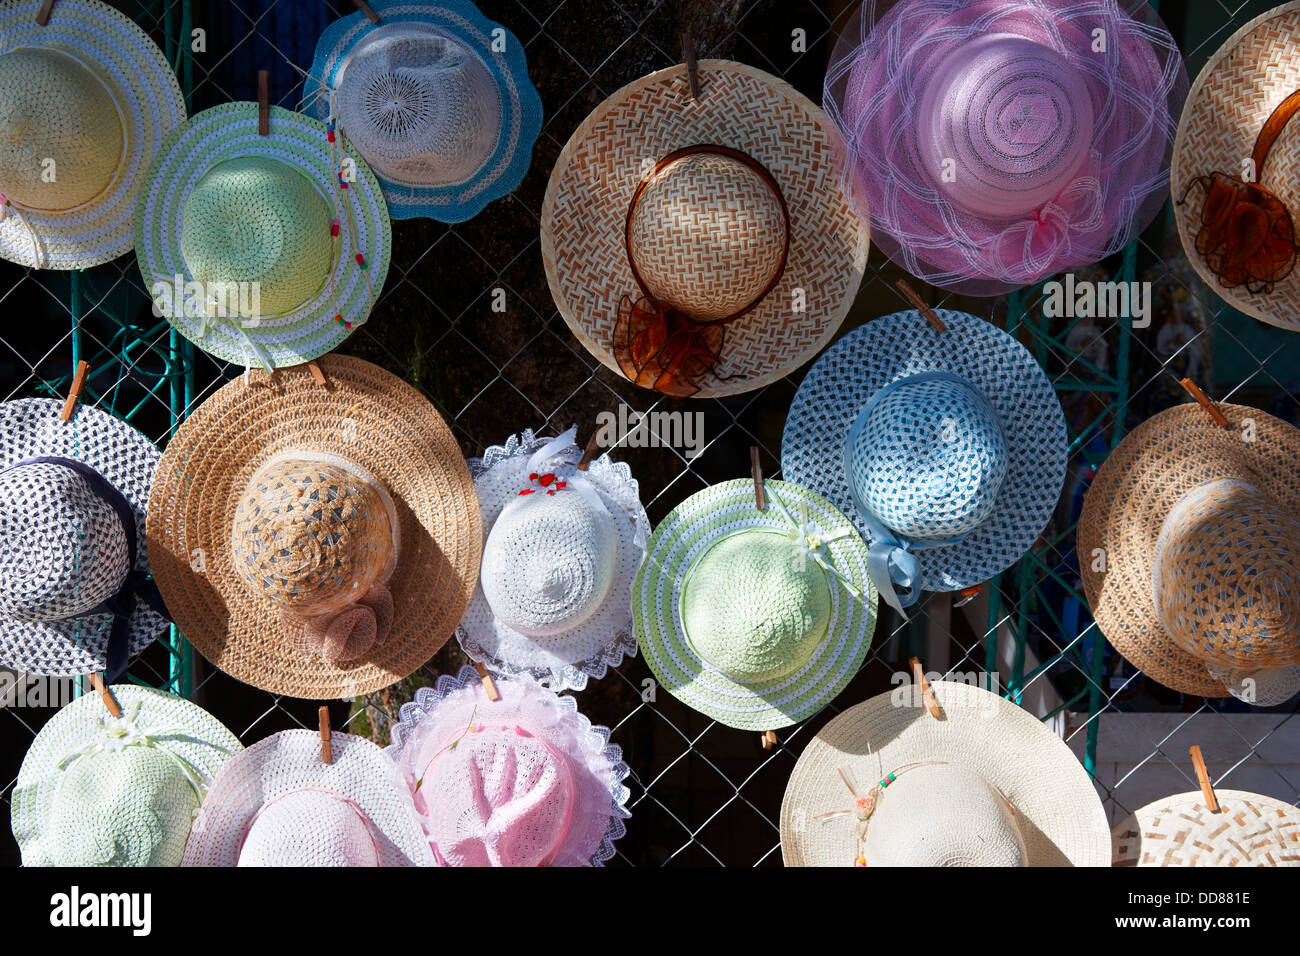 6642501340f Ladies Hats Stock Photos   Ladies Hats Stock Images - Alamy